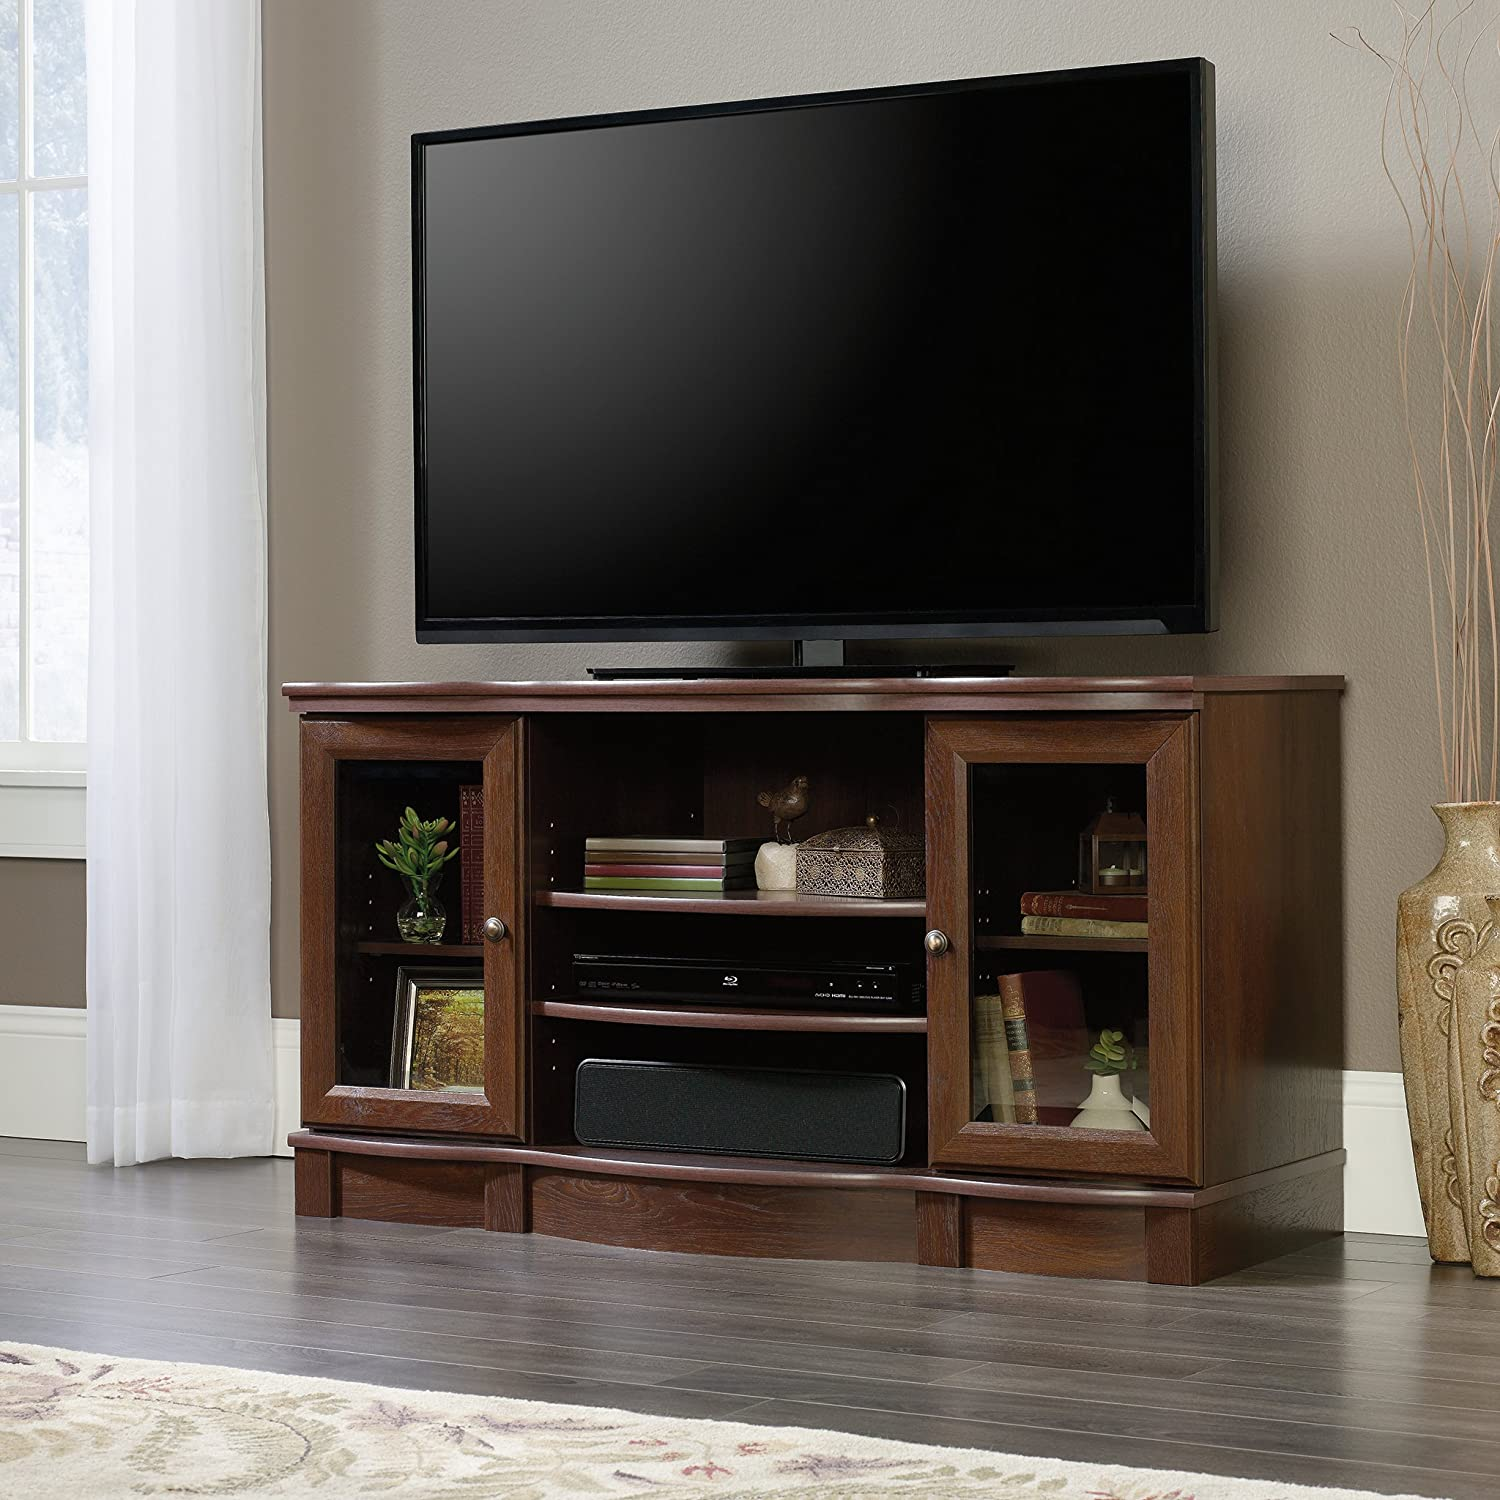 Sauder 419963 Regent Place TV Stand, For TV s up to 50 , Euro Oak finish